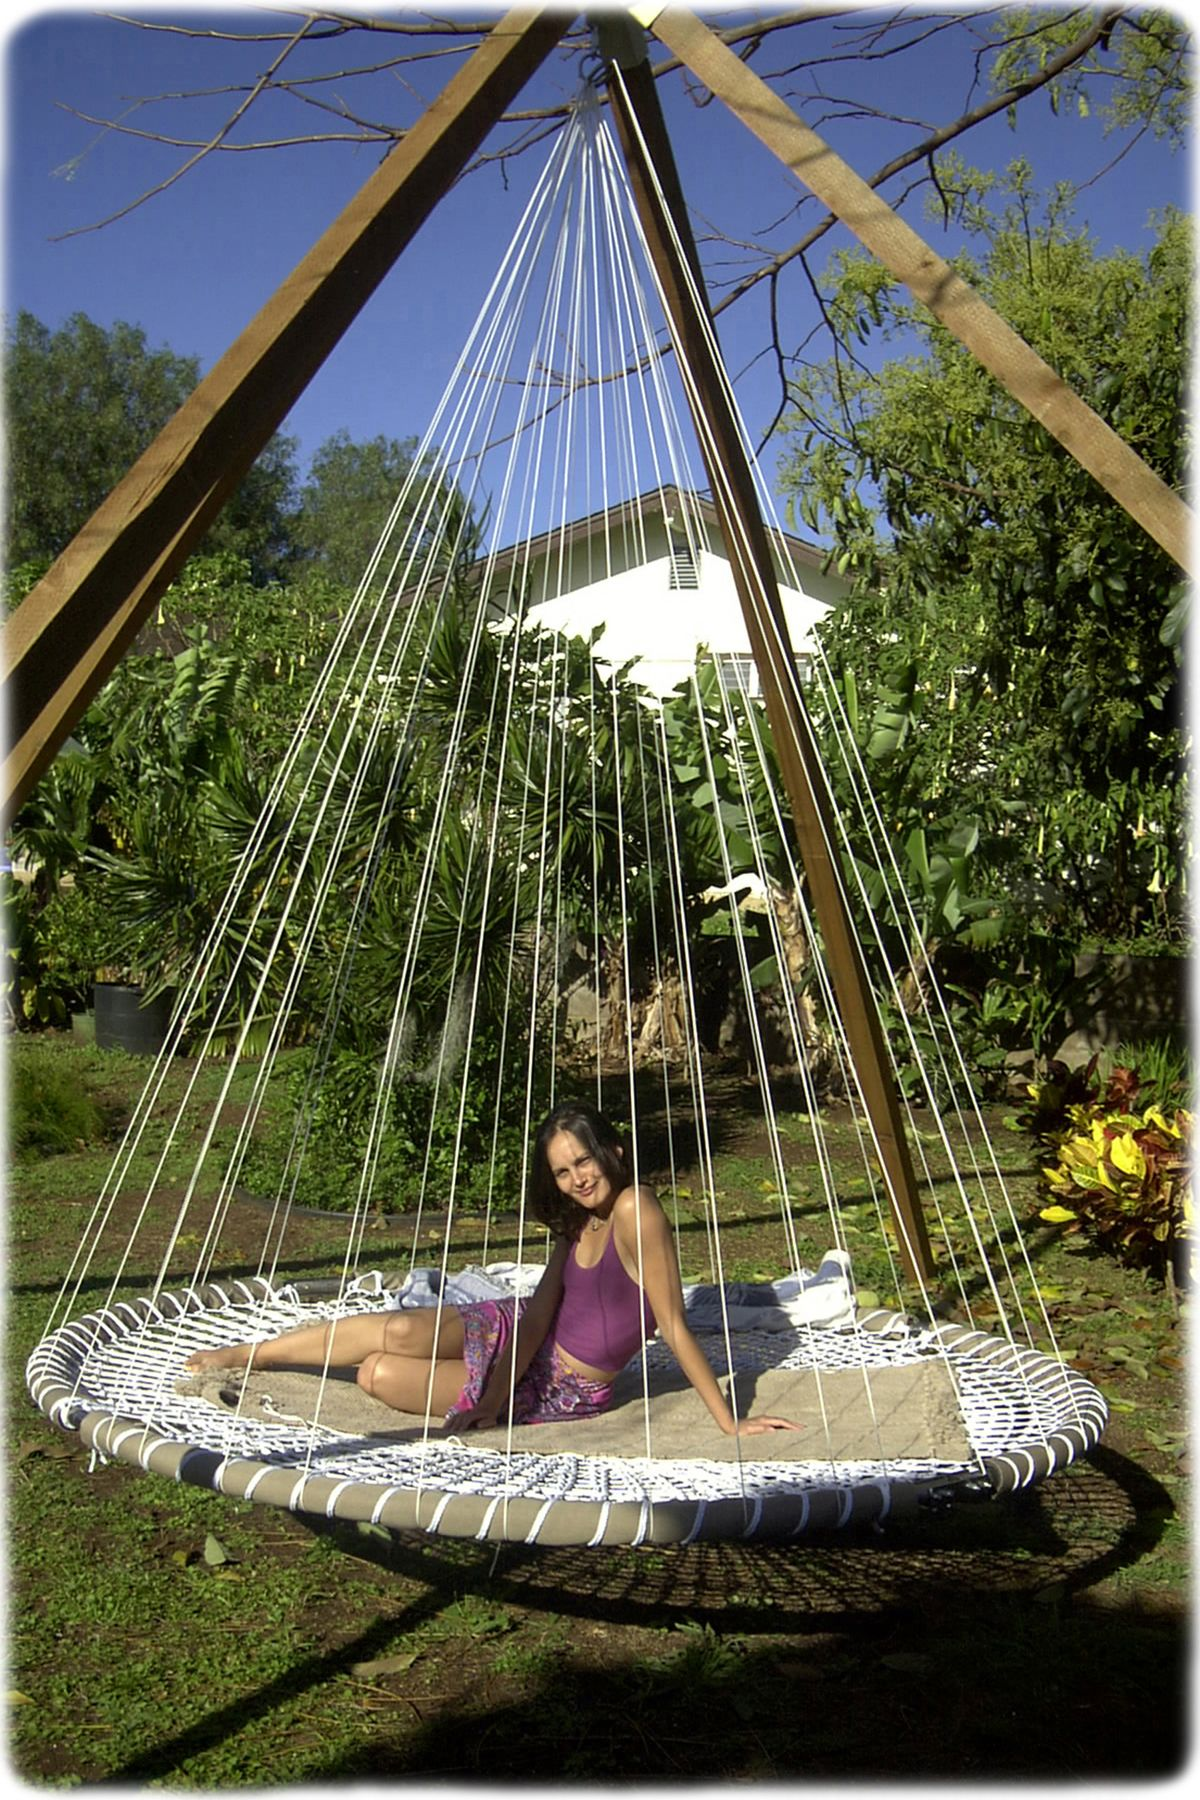 Beds on pinterest gardens floating bed and wicker patio furniture - Outdoor Hanging Bed Diy Trampoline I Wanna Sleep On This